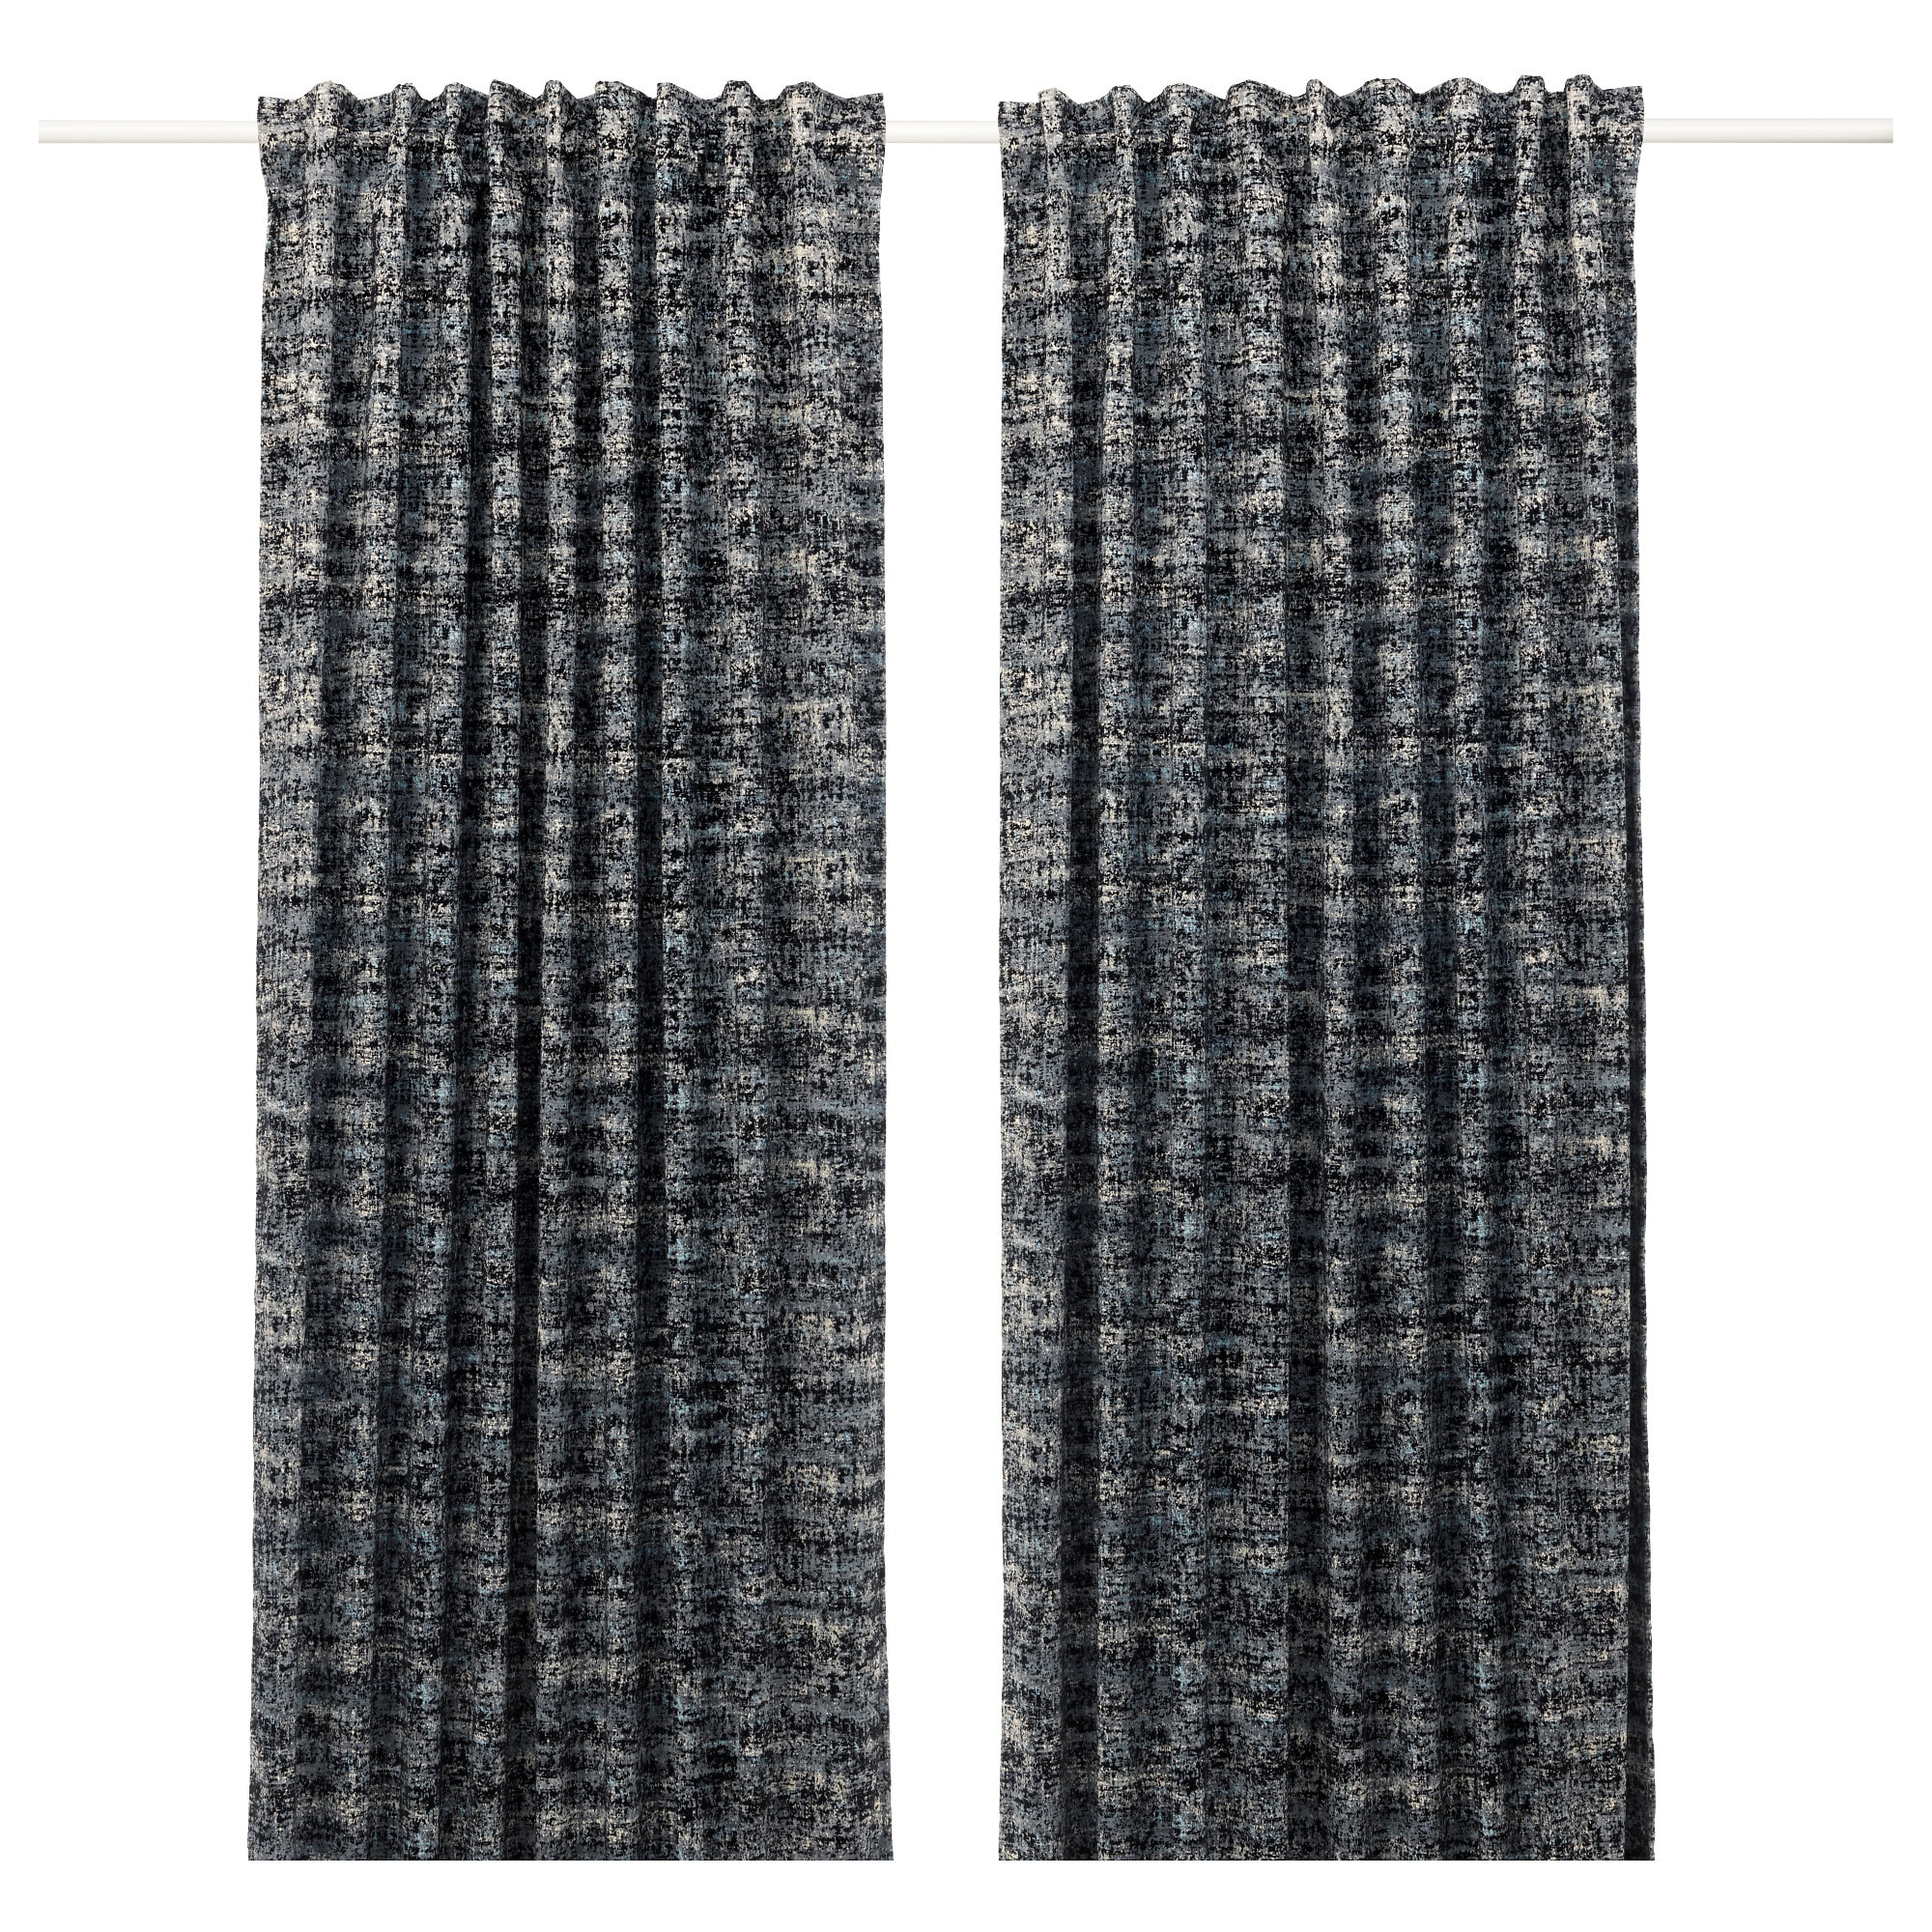 Black and white curtains - Solidaster Blackout Curtains 1 Pair Black Multicolor Length 98 Width